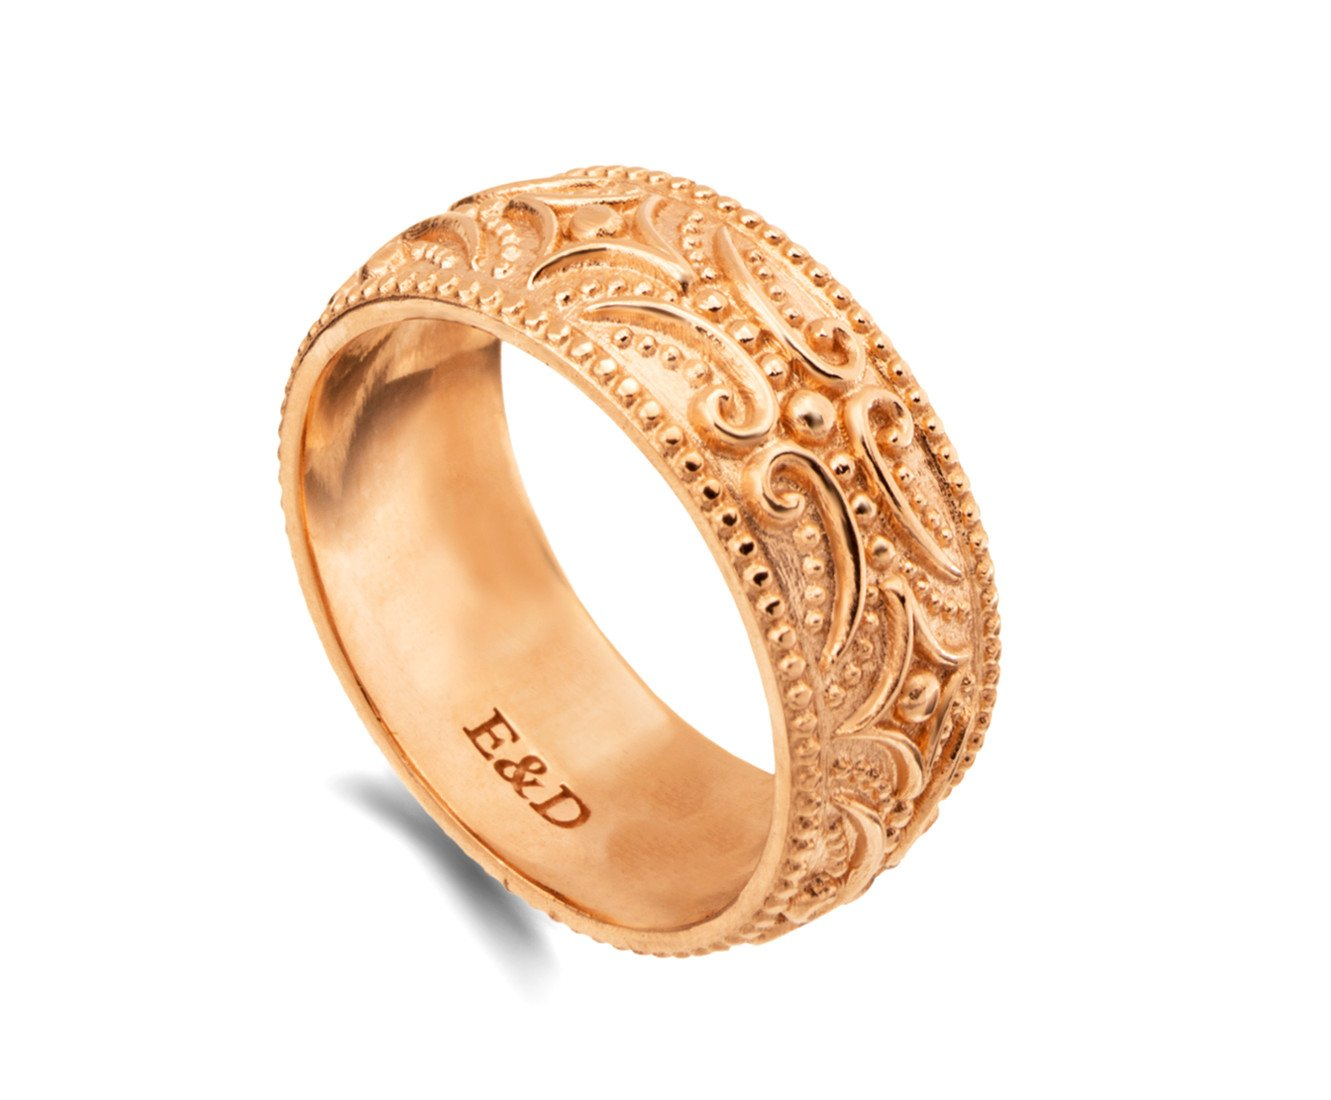 It is a graphic of Amazon.com: Solid gold wide wedding band tribal patterned boho